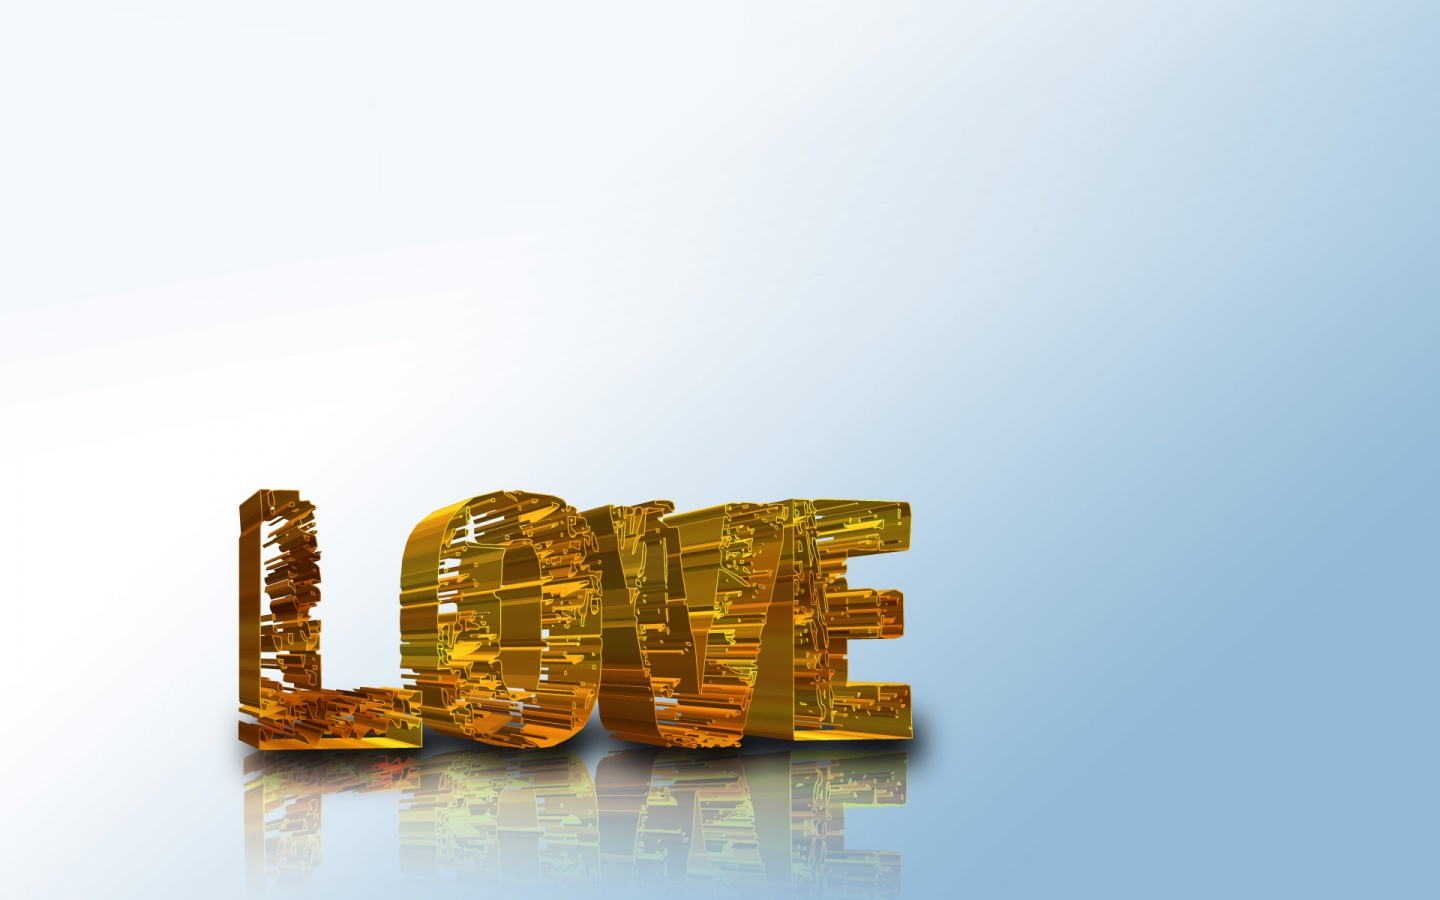 Romantic love 1440 x 900 download close